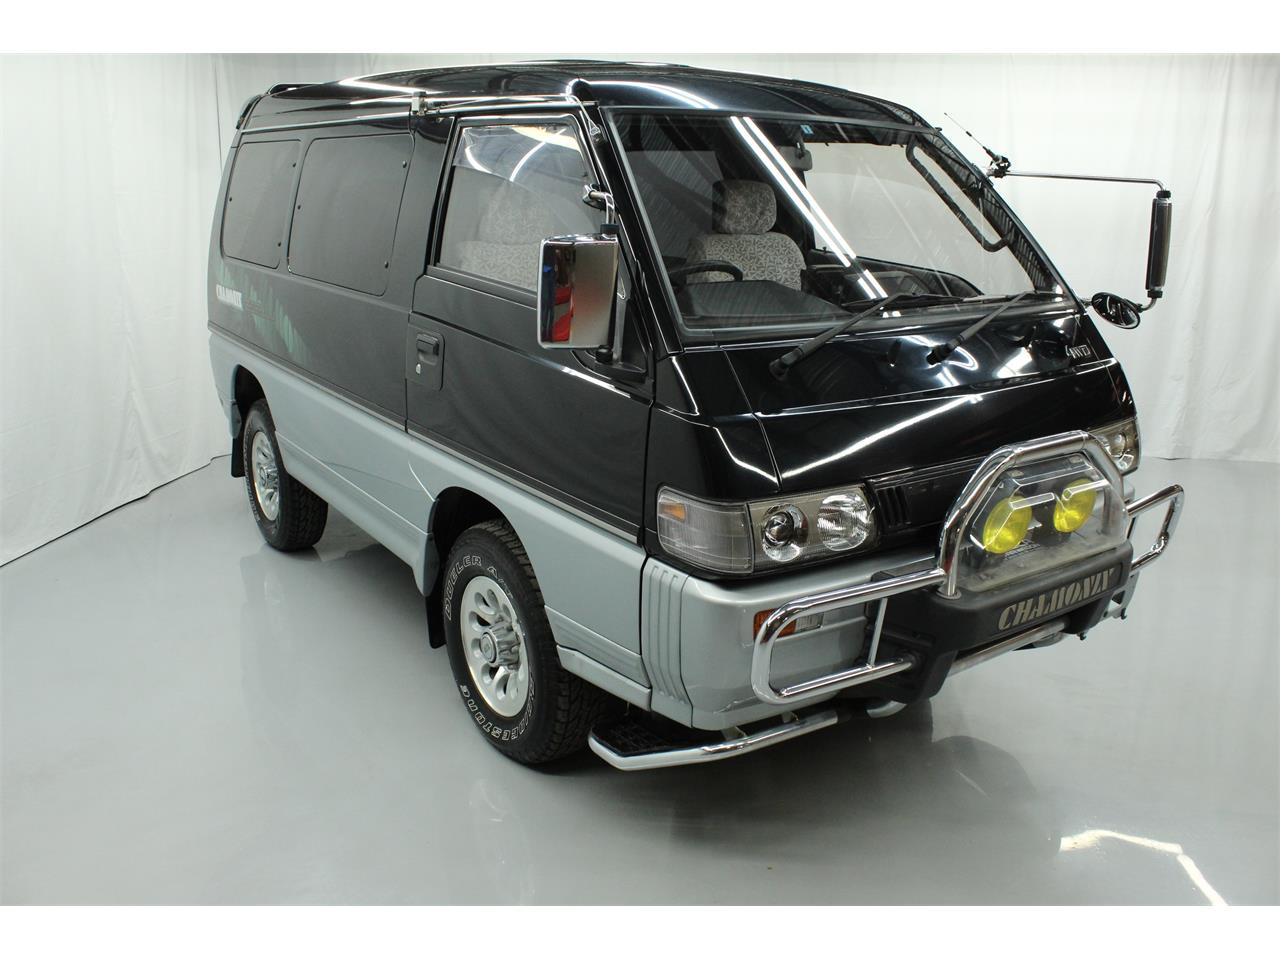 1992 Mitsubishi Delica for sale in Christiansburg, VA – photo 3